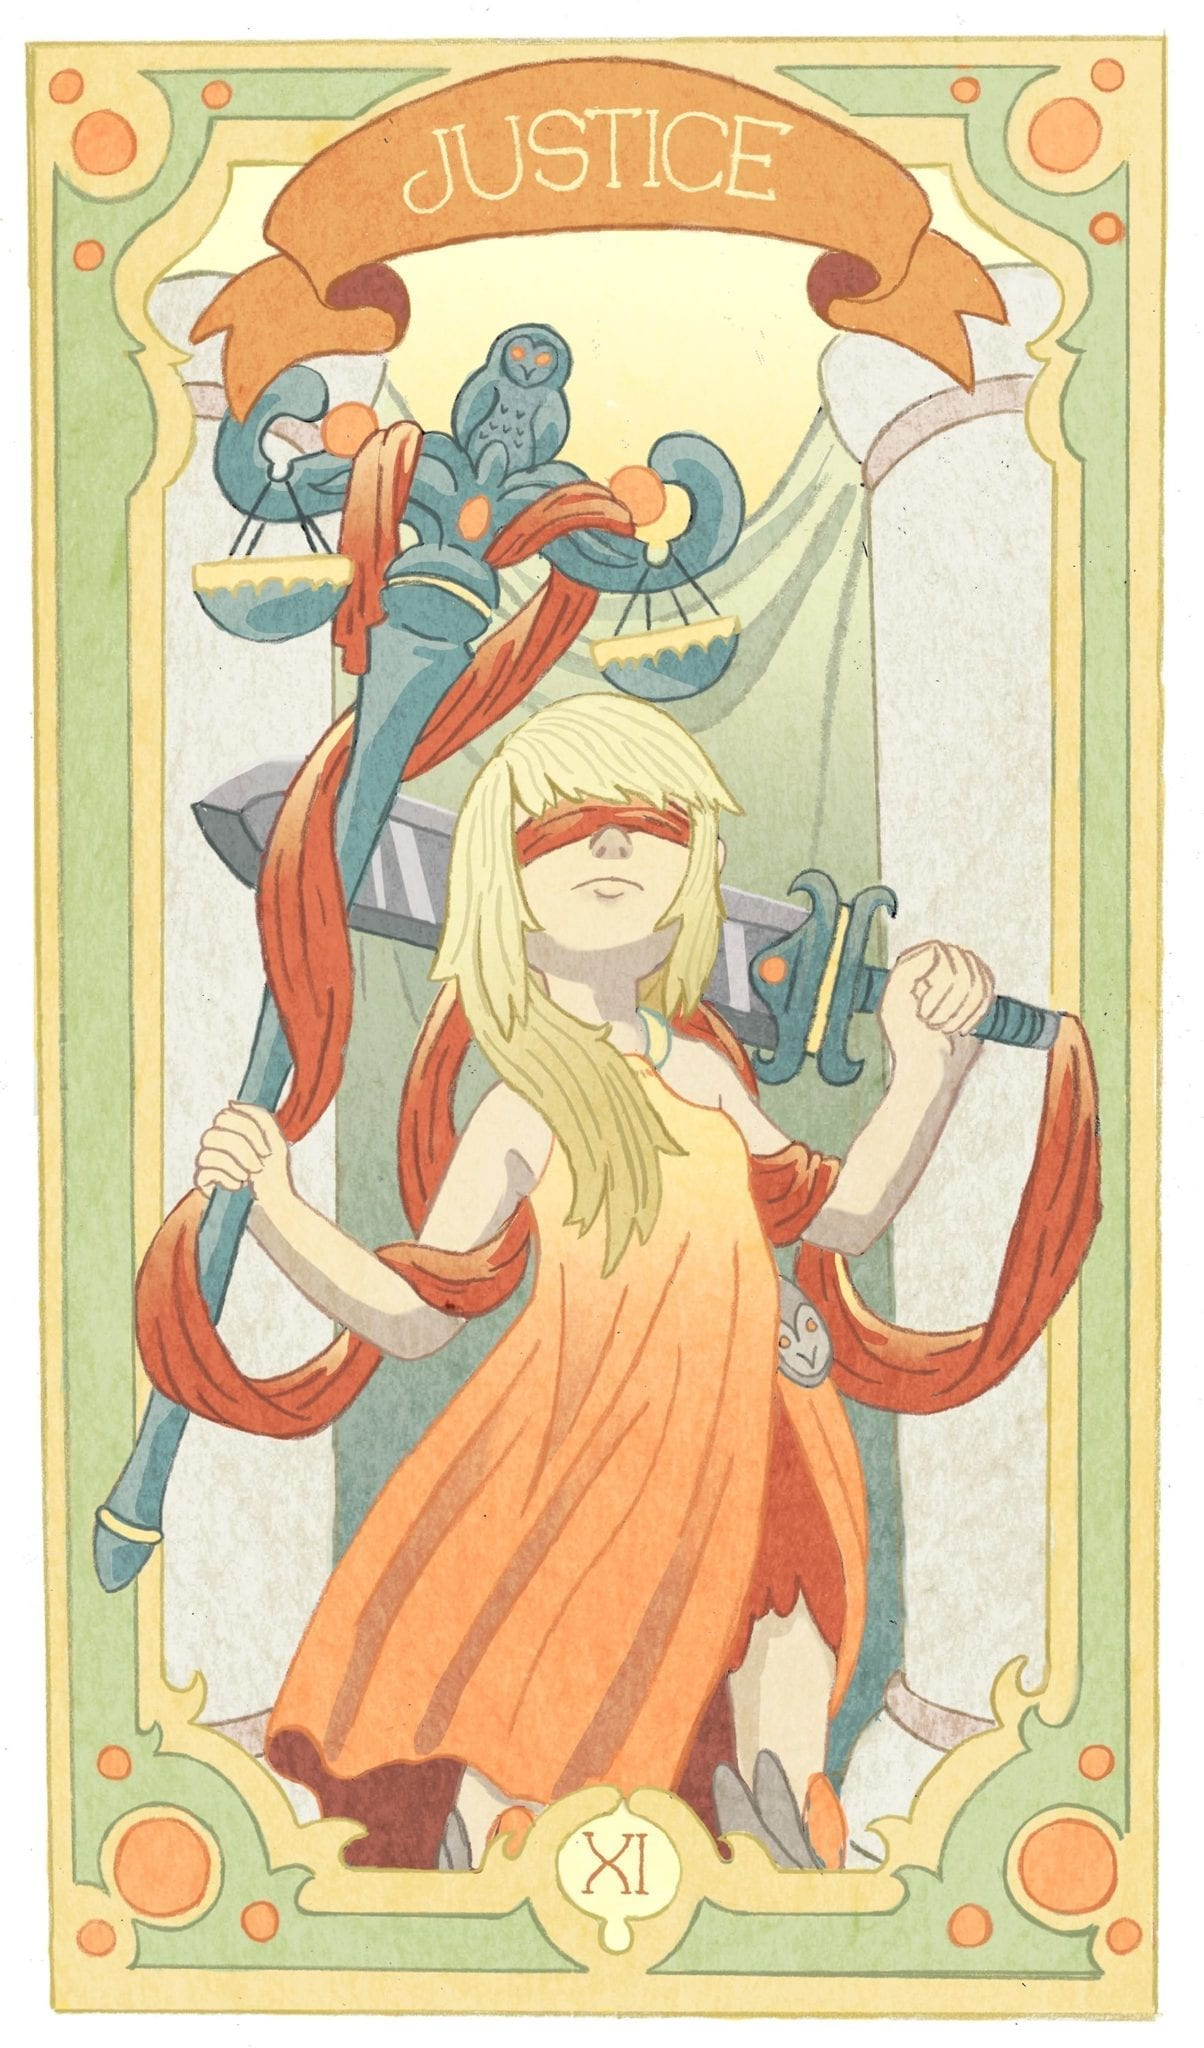 justice tarot illustration